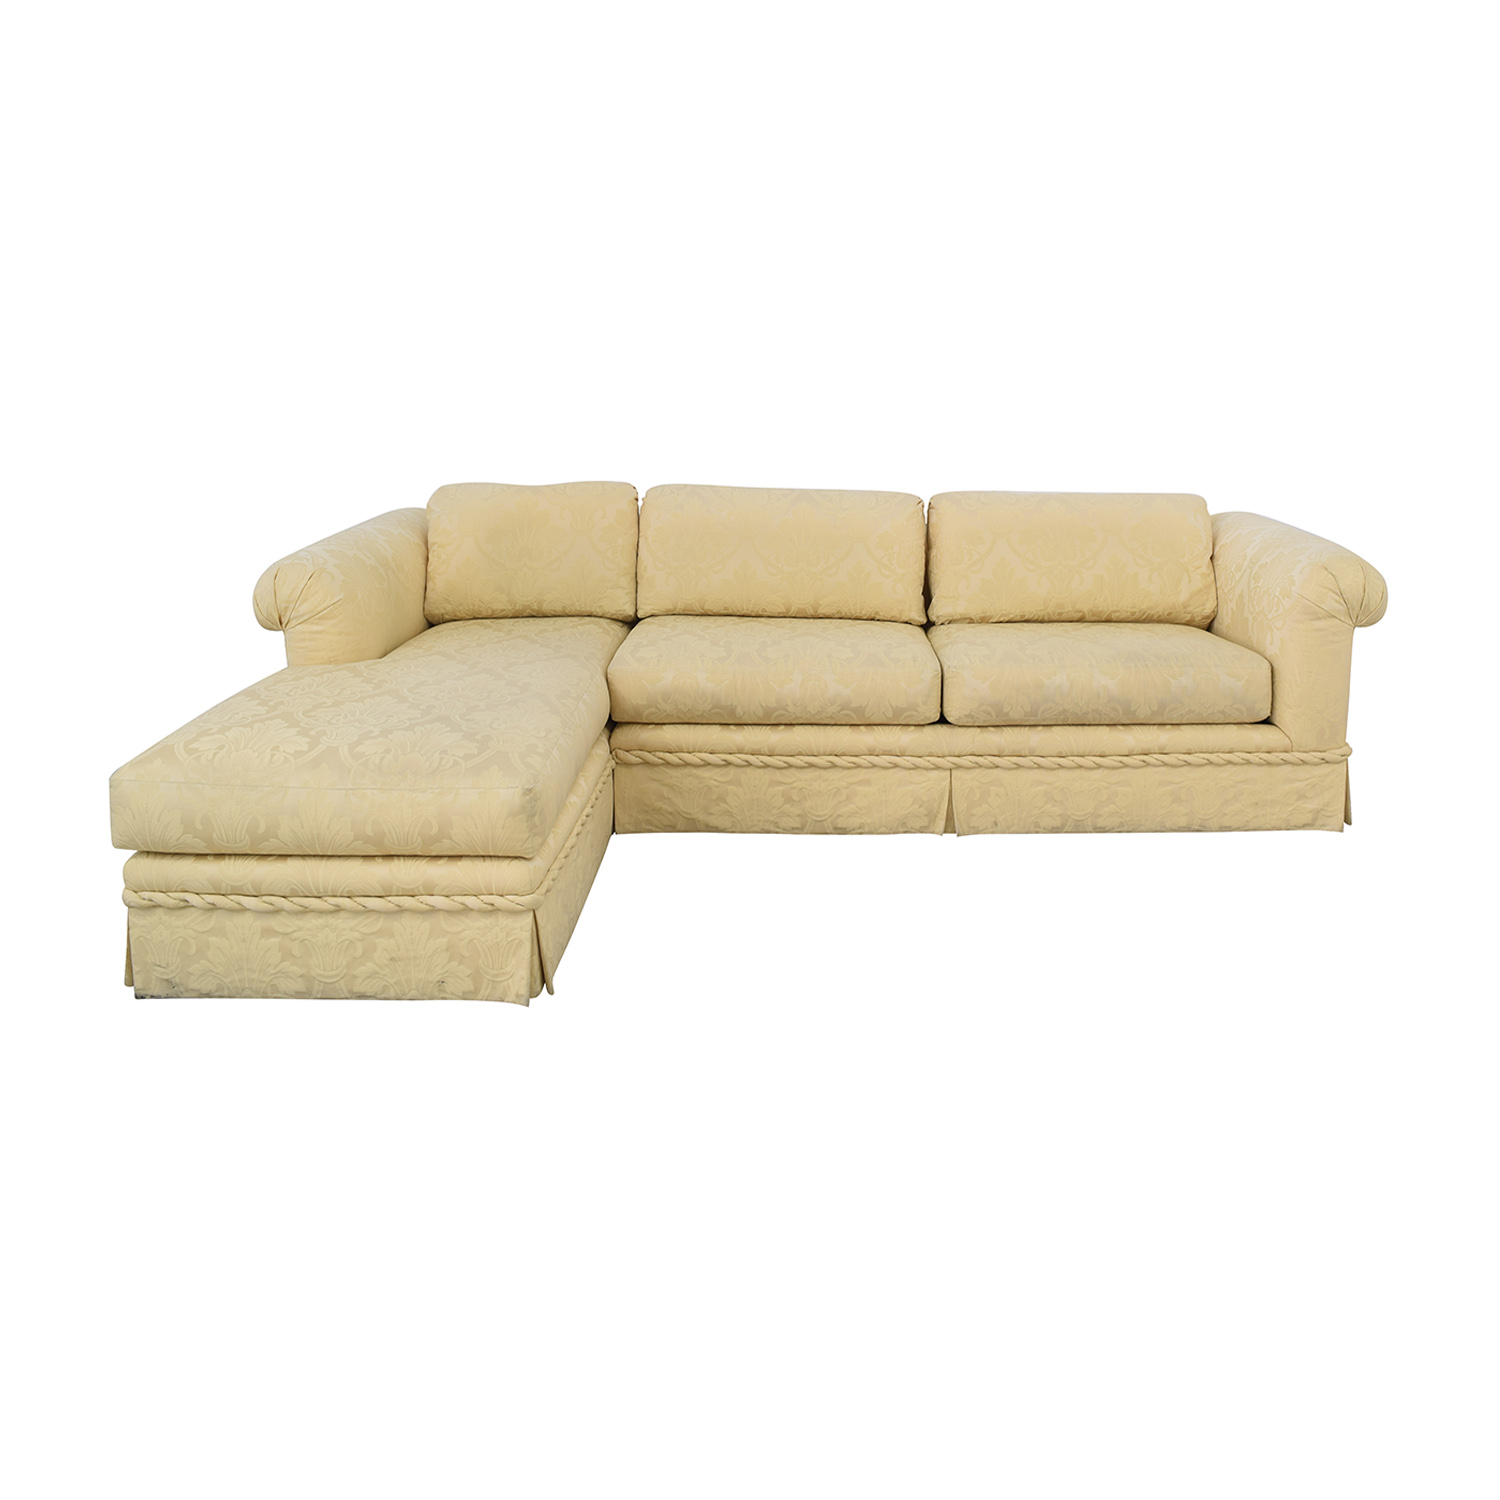 shop Kreiss Kreiss Chaise Sectional Sofa online